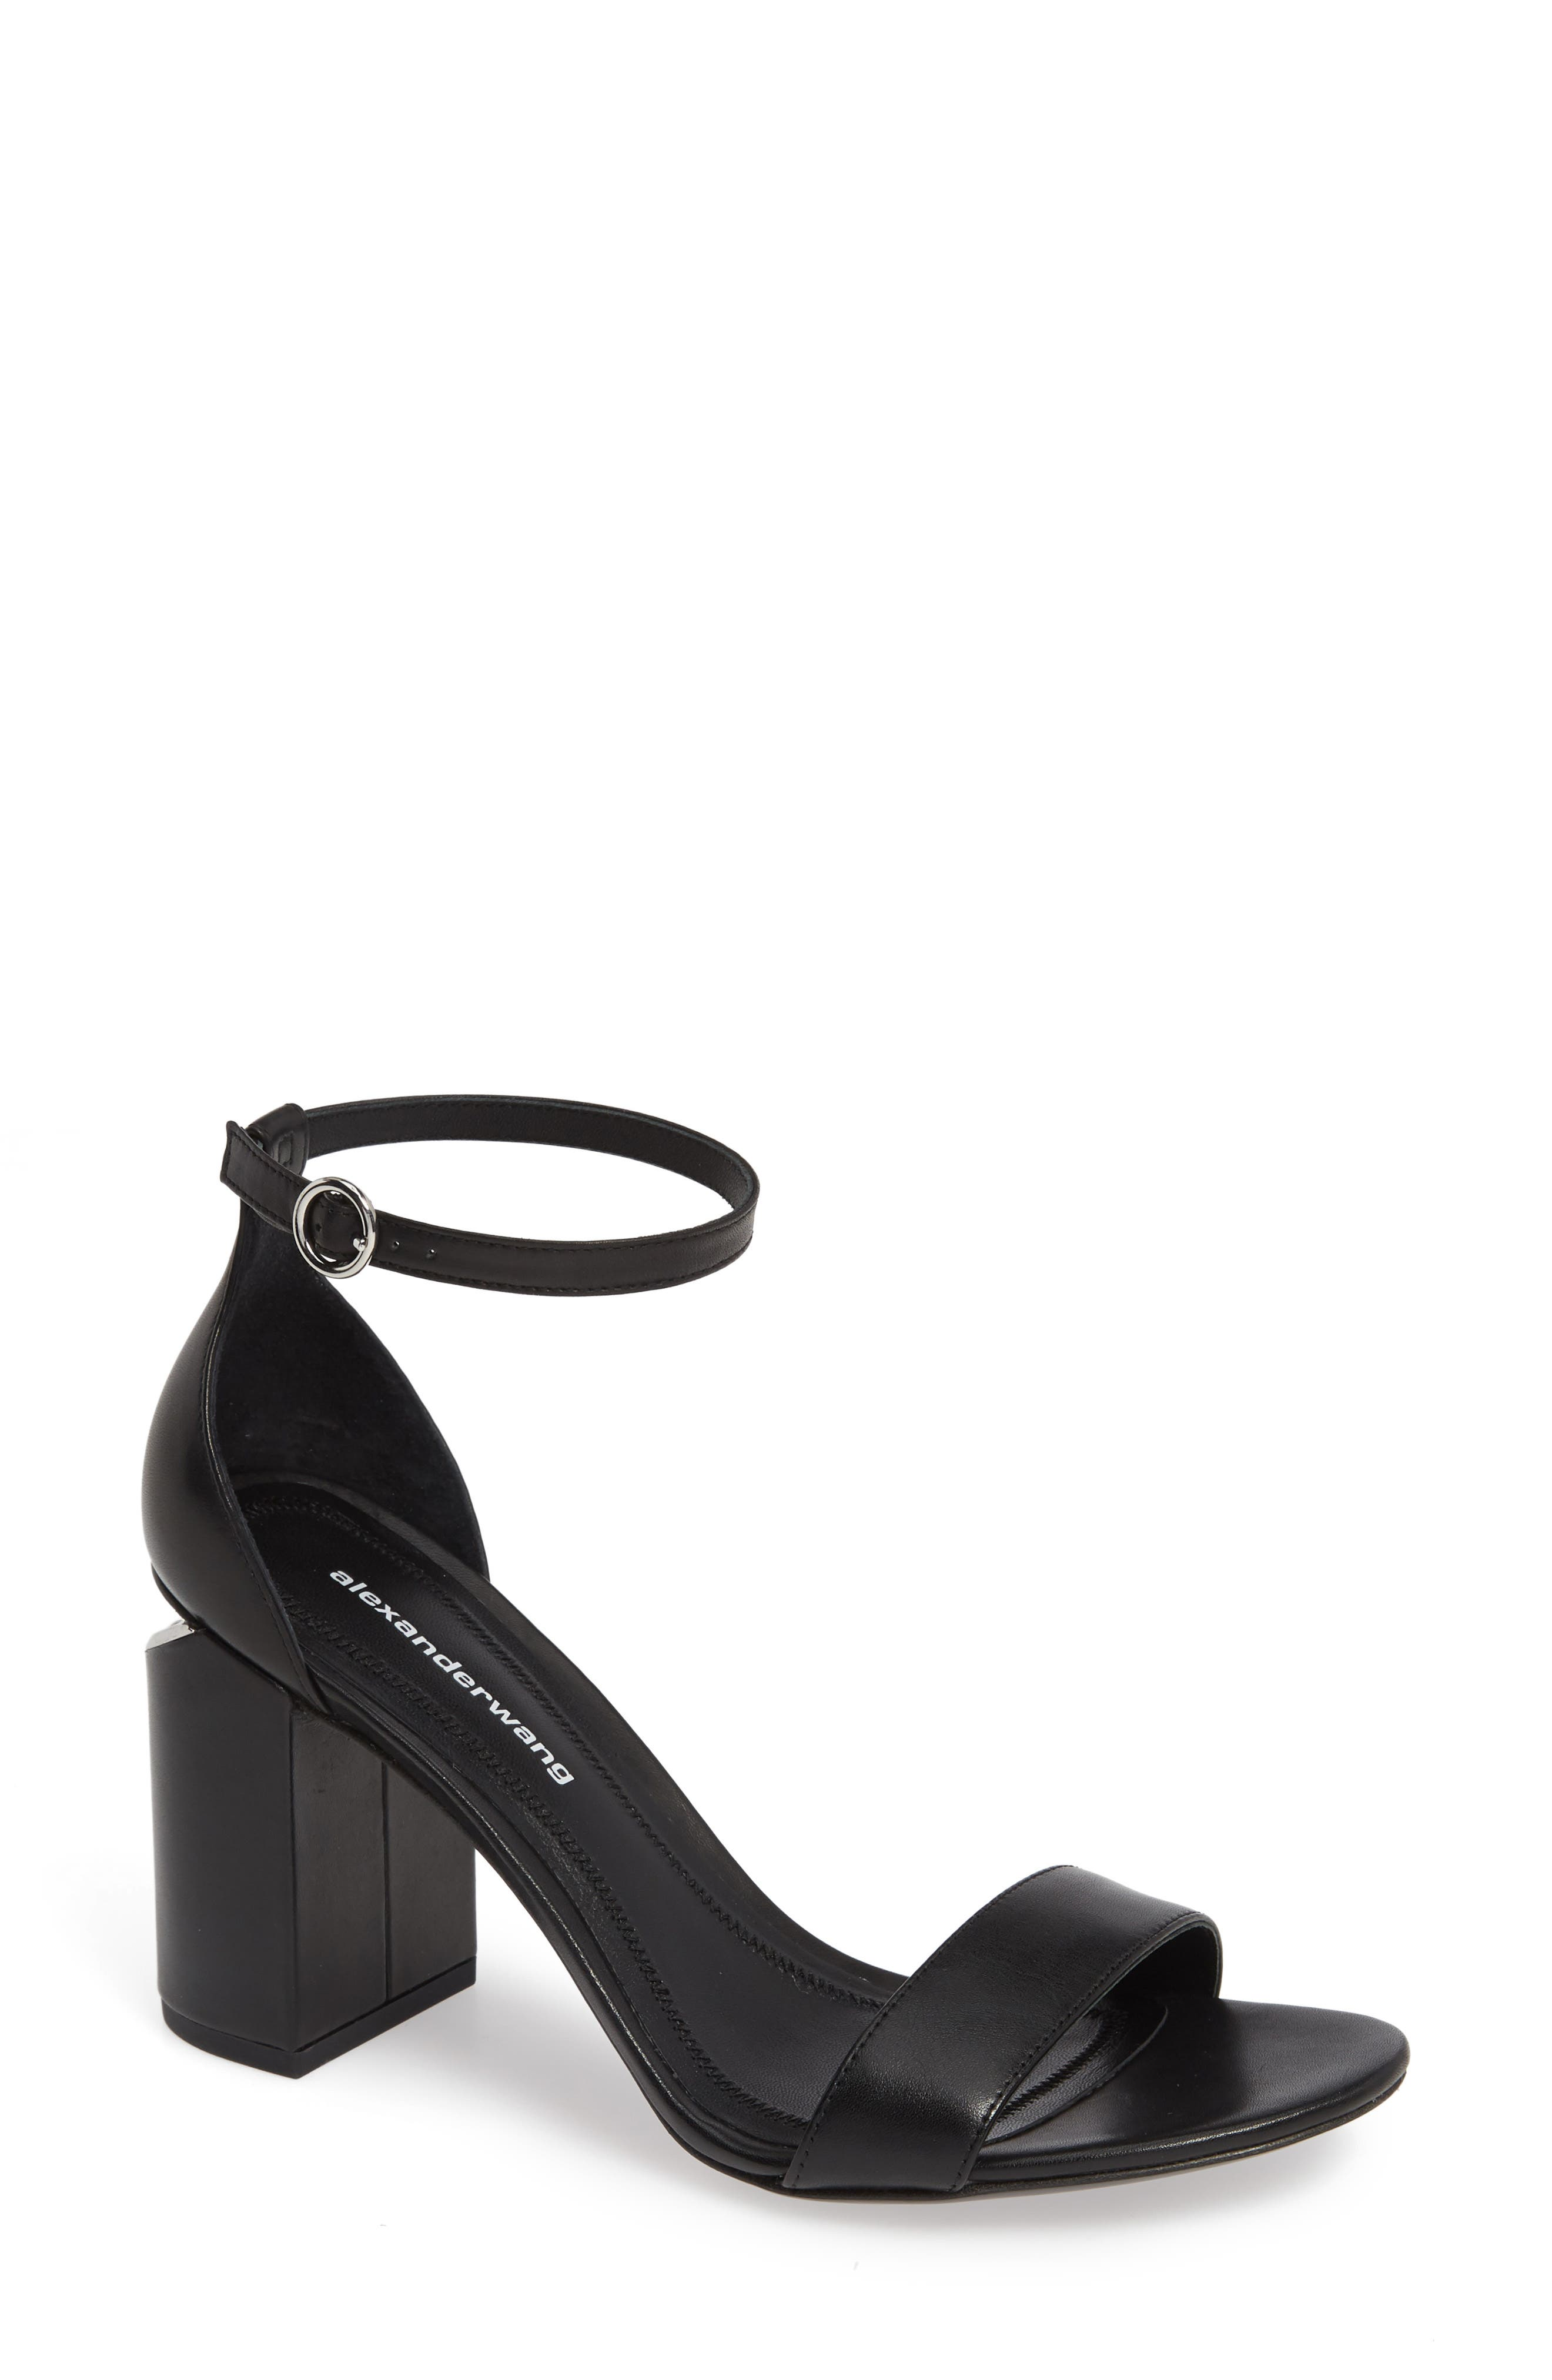 ALEXANDER WANG, New Abby Ankle Strap Sandal, Main thumbnail 1, color, BLACK